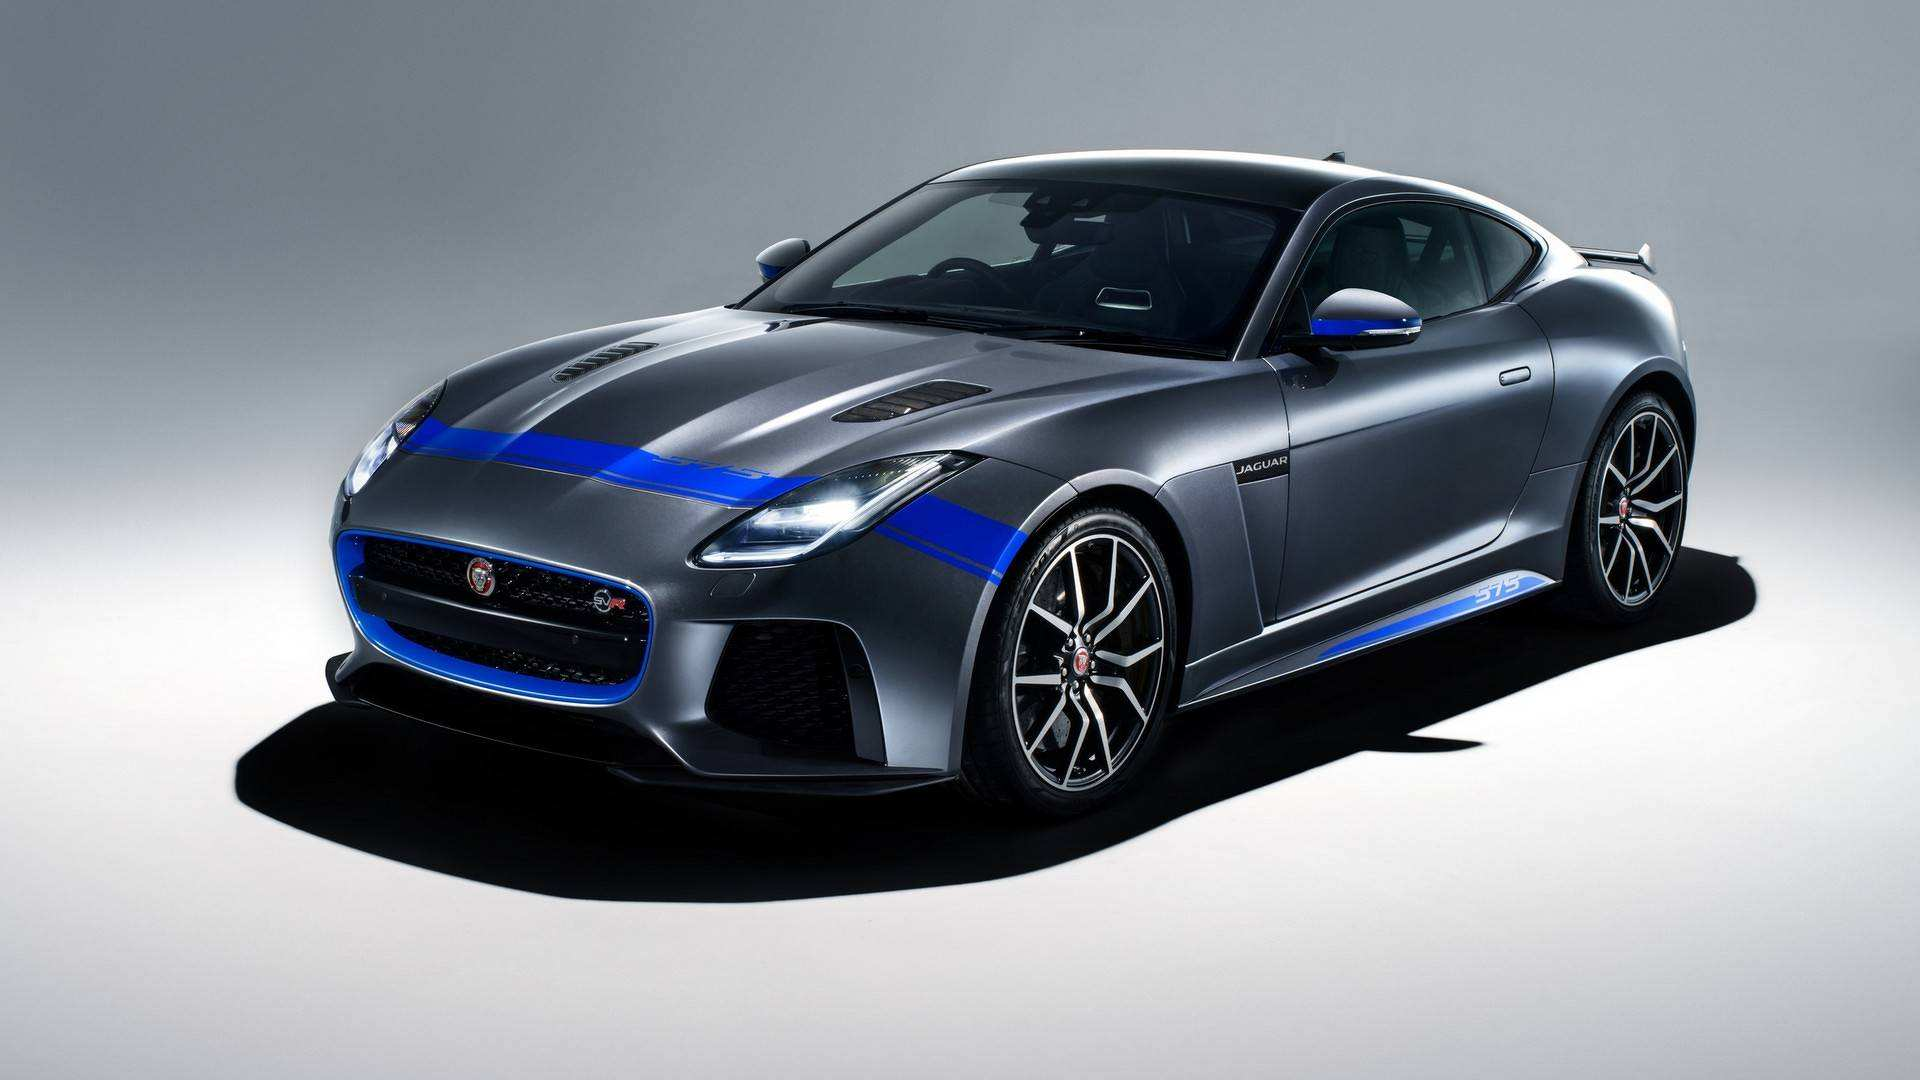 29 The Best Jaguar F Type 2020 Model Model